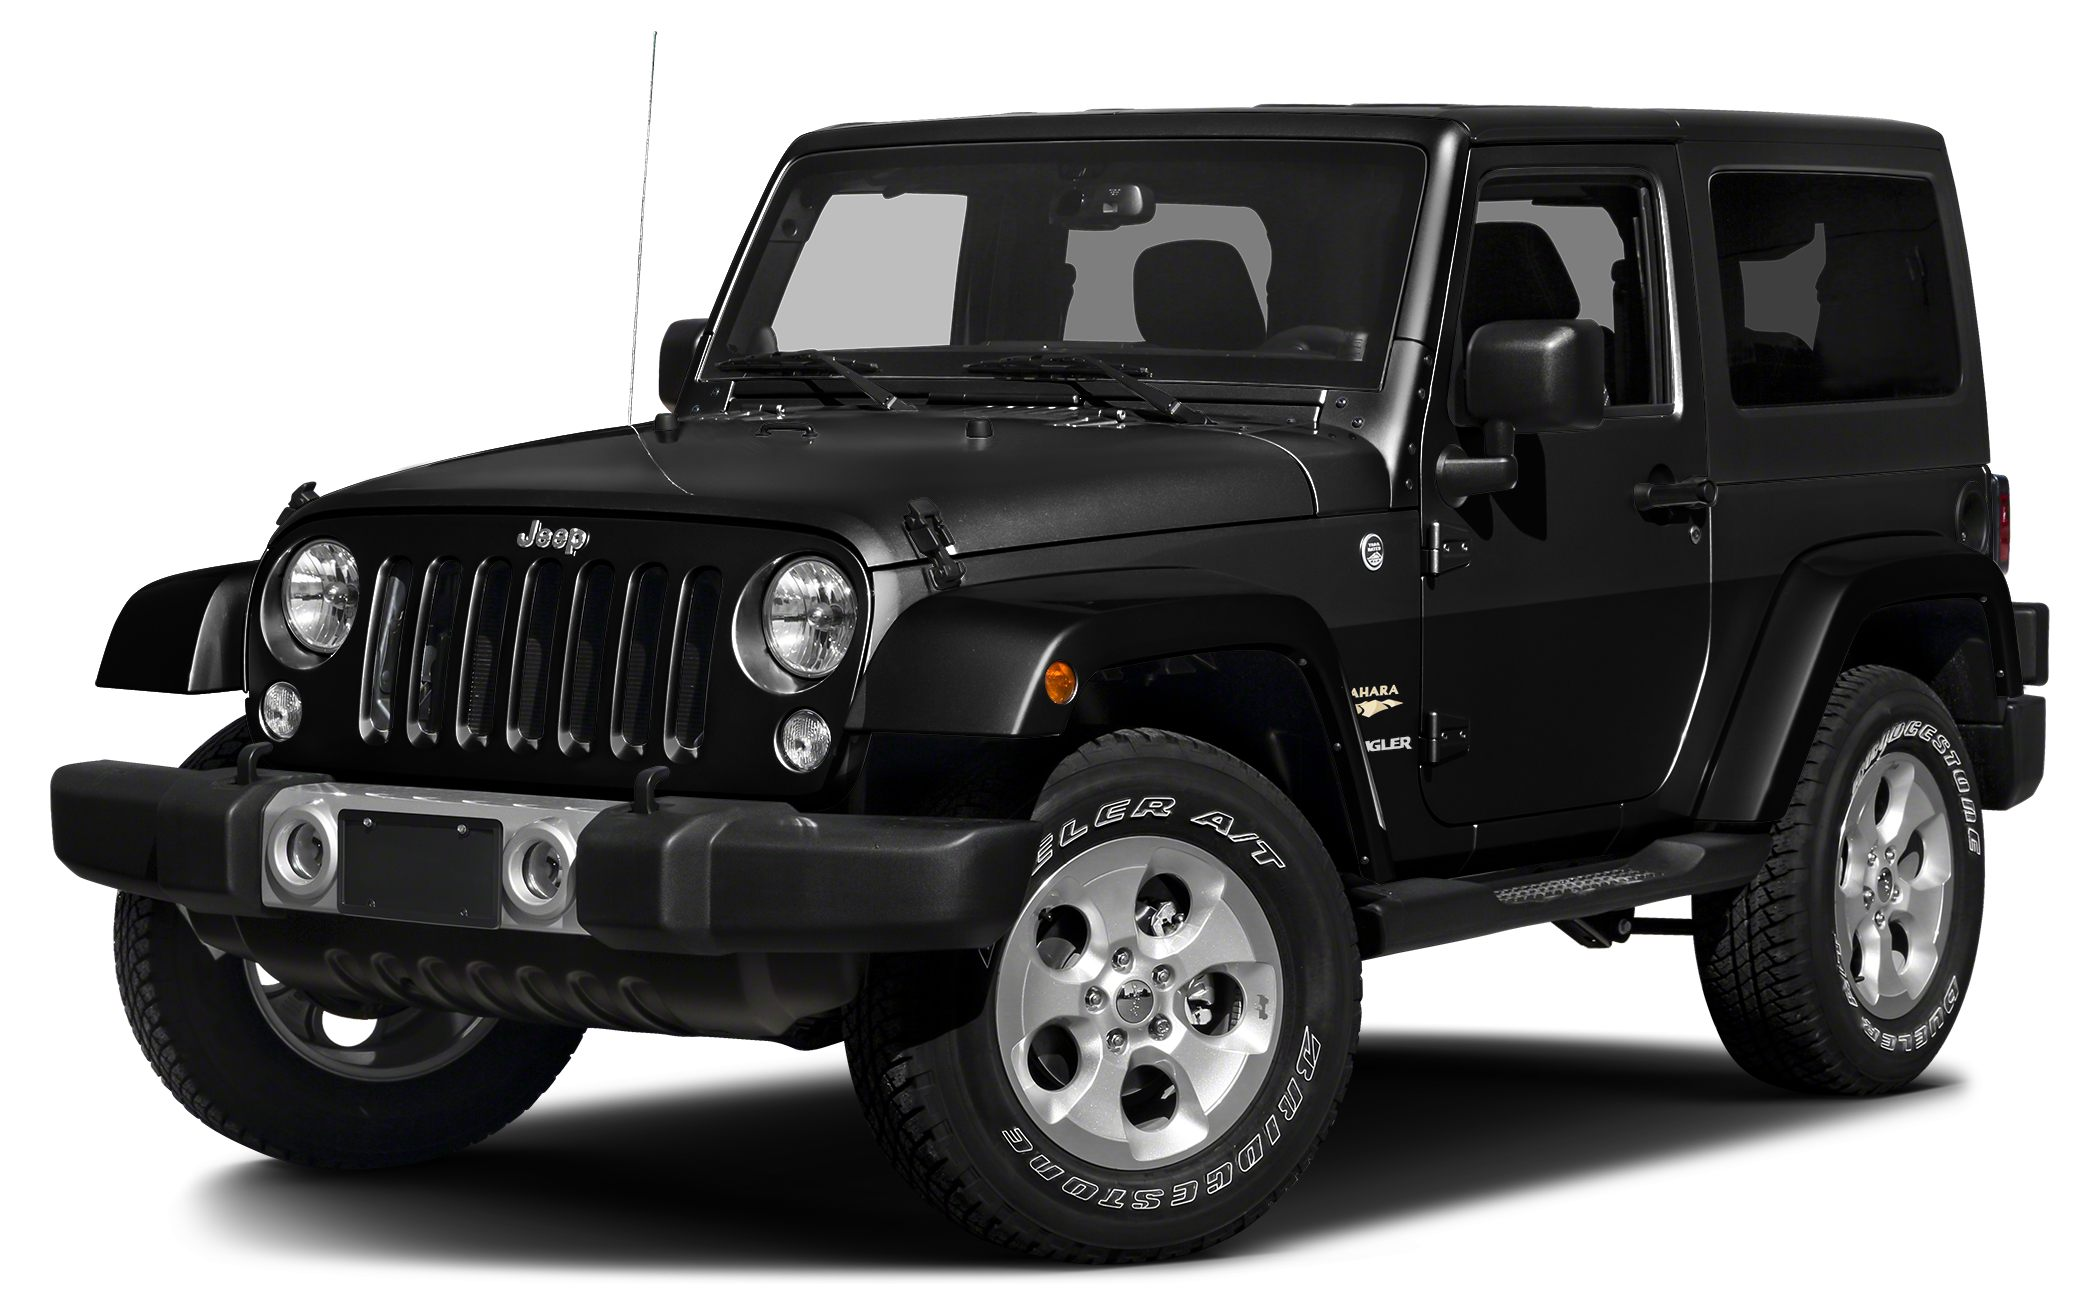 2015 Jeep Wrangler Sahara This special Internet buy for price reflects all applicable manufacturer